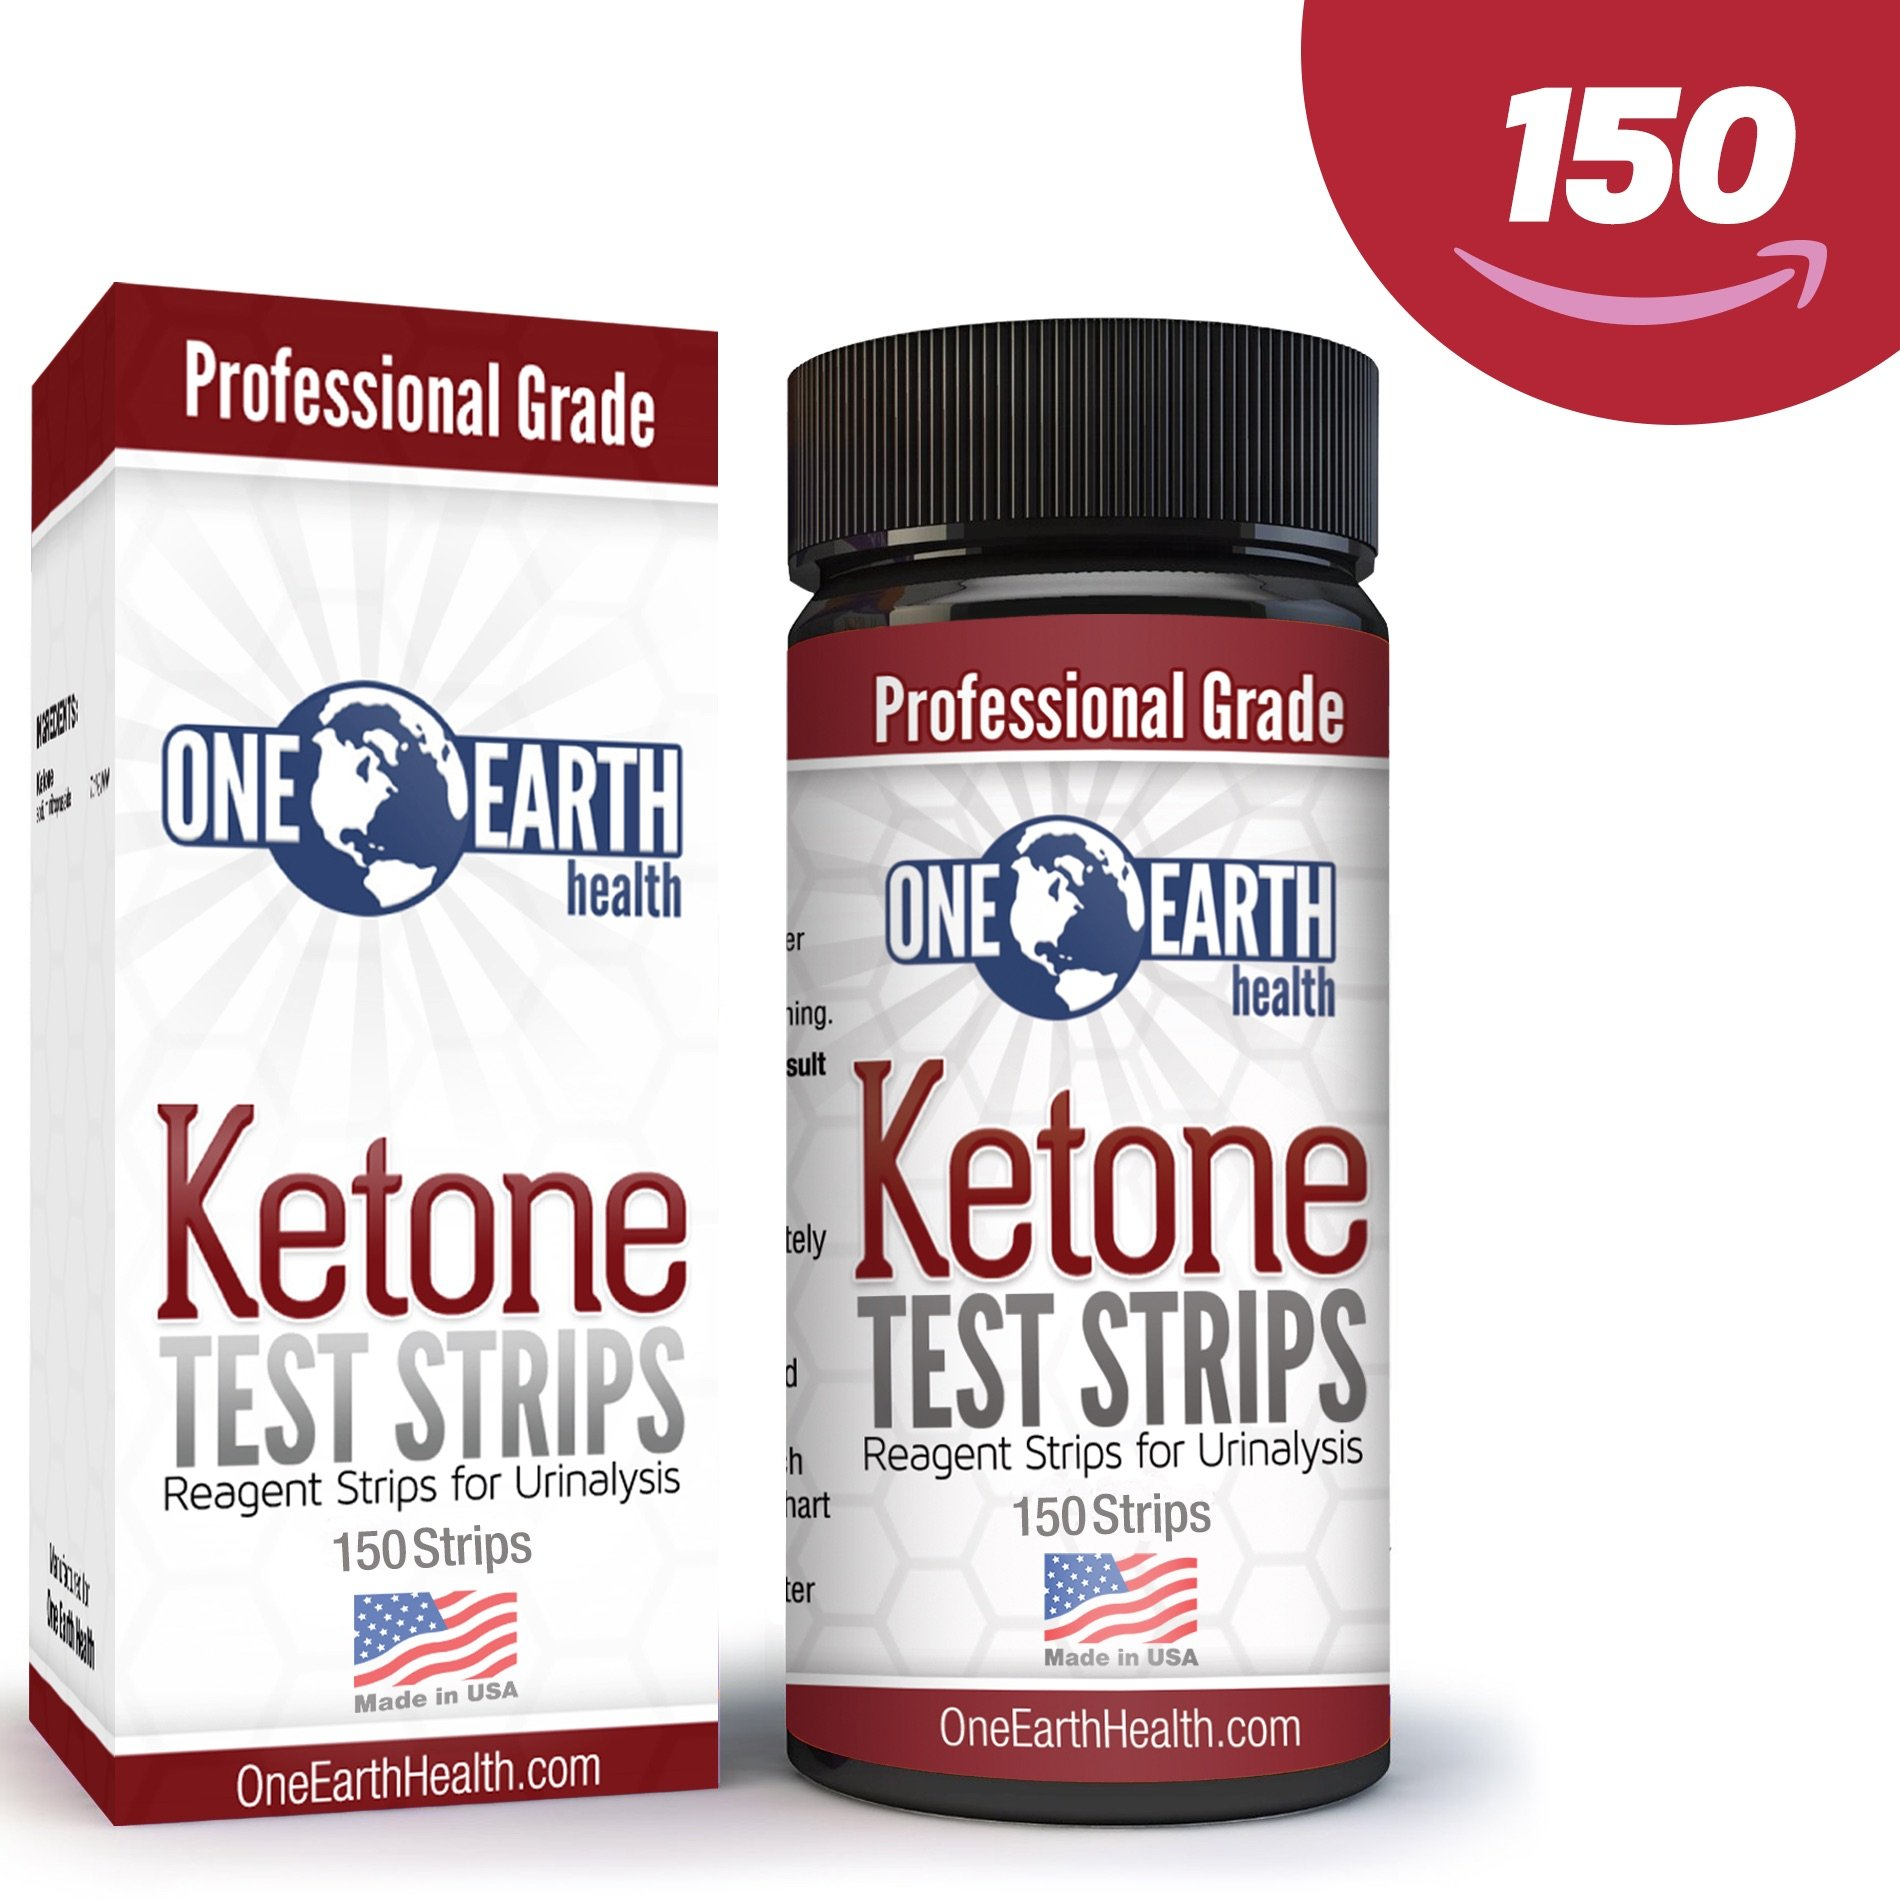 Ketone Strips (USA Made, 150 count): Accurate test strips for Keto Diet, Diabetics and Ketone measurement. Lose weight with confidence. Includes Ebook emailed. Lifetime Guarantee